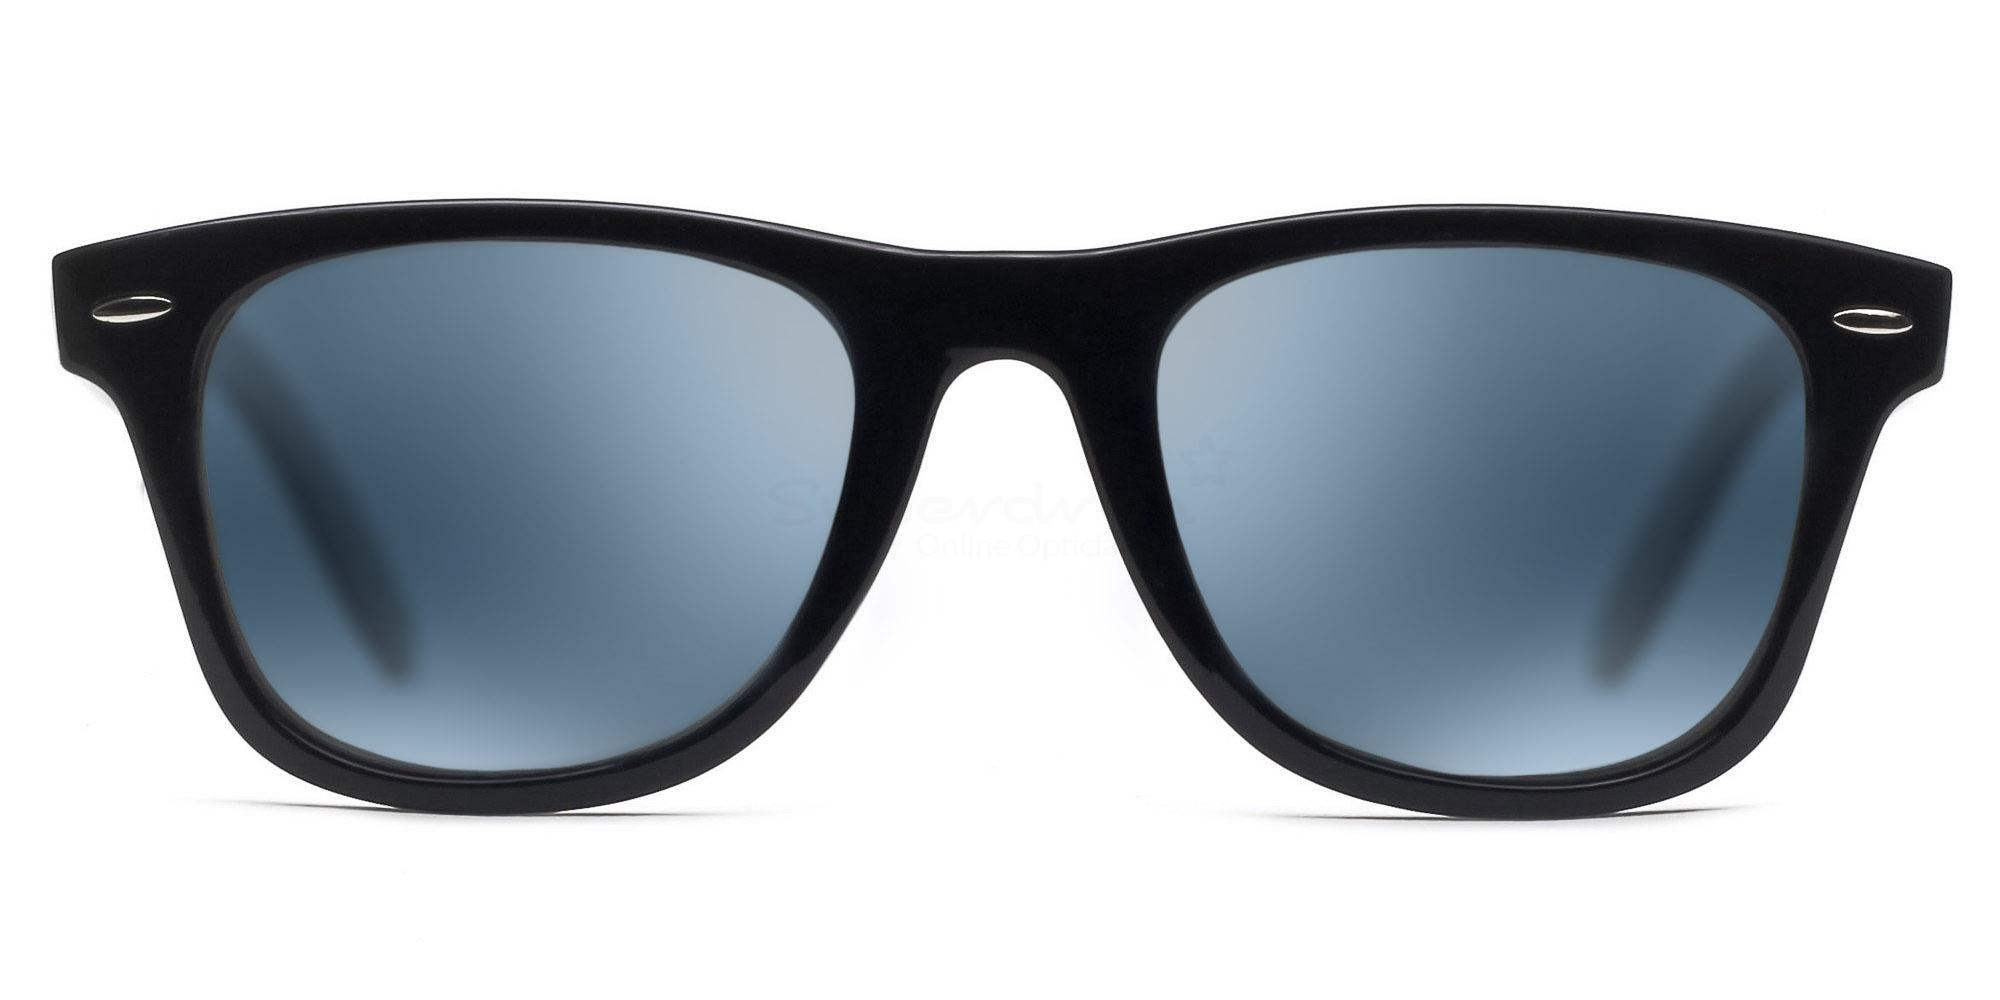 C01 Polarized Grey with Silver Mirror P2429 - Black (Mirrored Polarized) , Neon